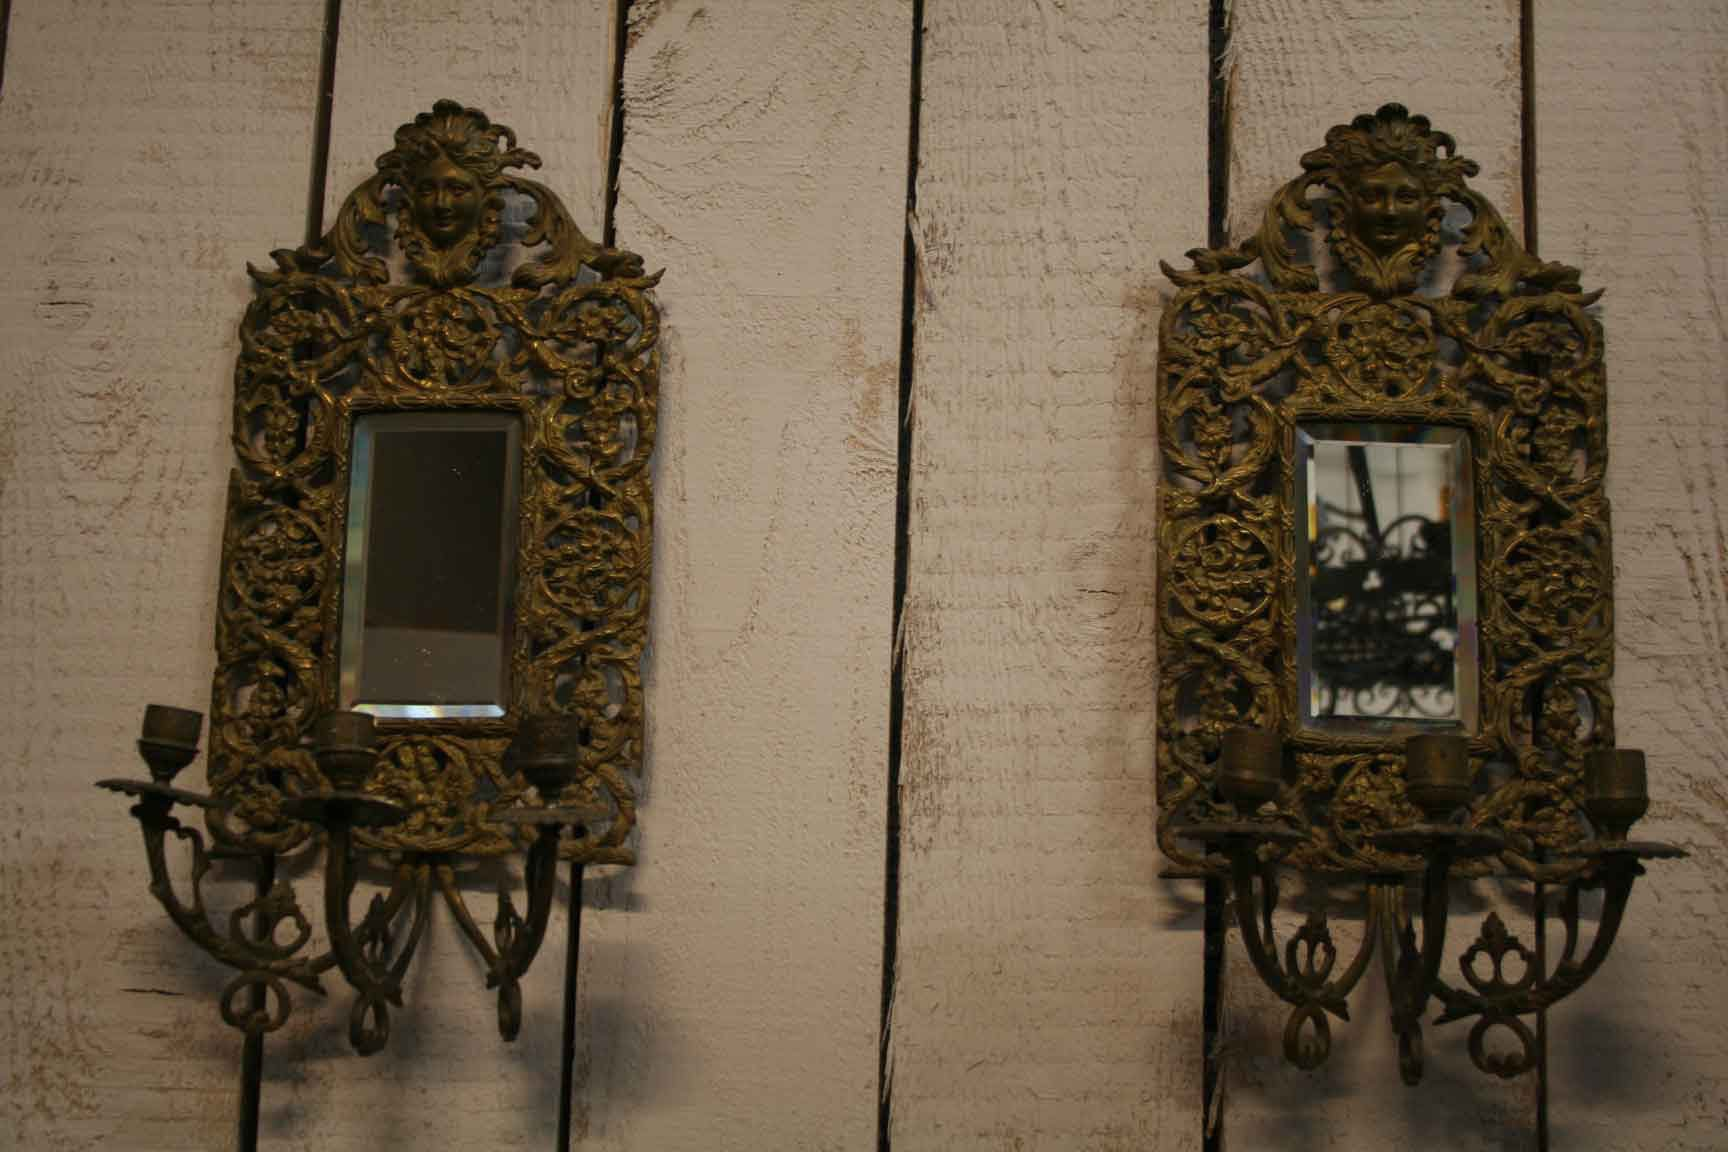 Antique Bronze Wall Mirrored Sconces, Set of 2 for sale at Pamono